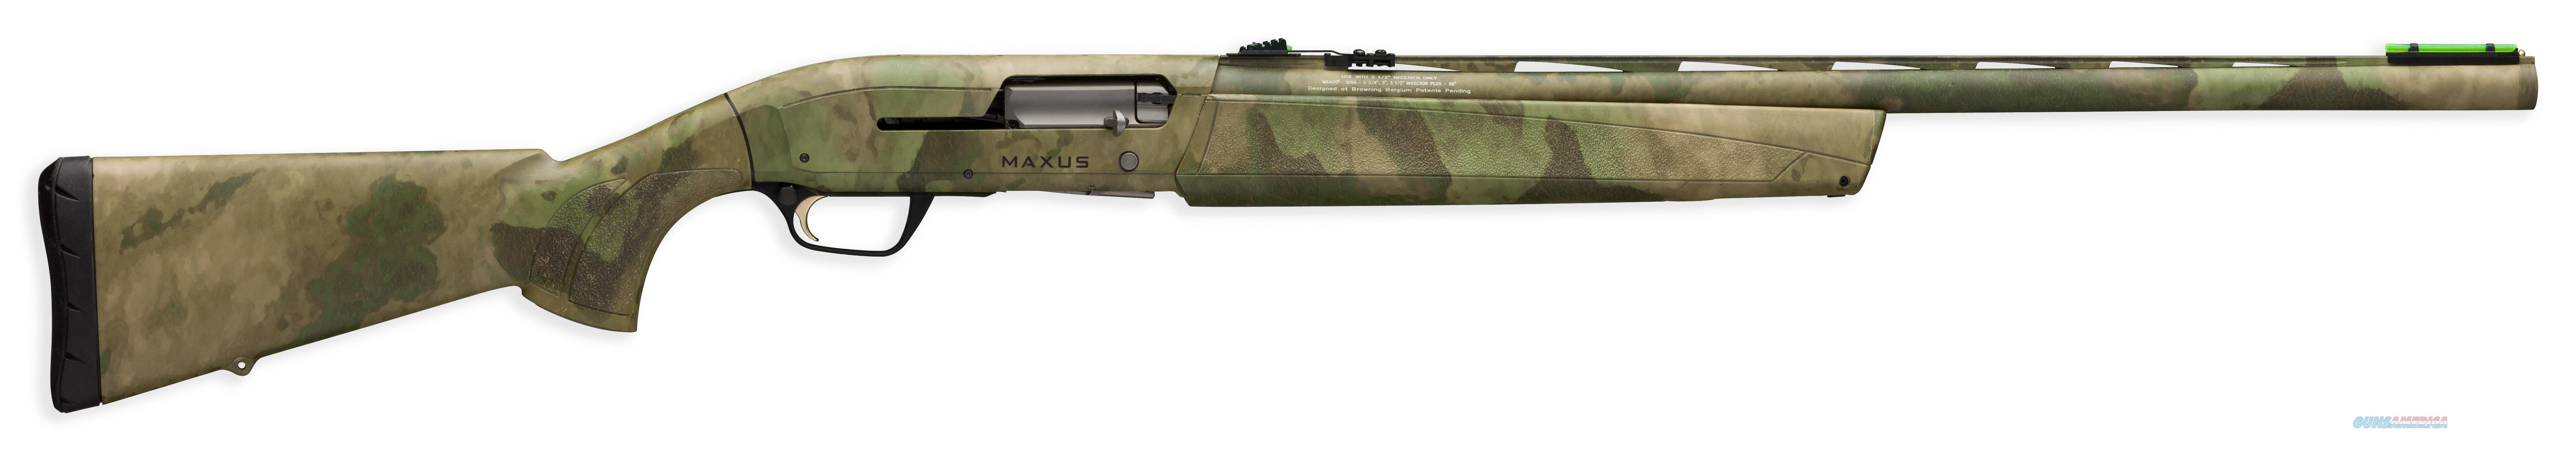 "BROWNING 011668205 MAXUS SEMI-AUTOMATIC 12GA 26"" 3.5"" CAMOUFLAGE SYNTHETIC STK/ALUMINUM ALLOY RCVR 011668205  Guns > Shotguns > Browning Shotguns > Autoloaders > Hunting"